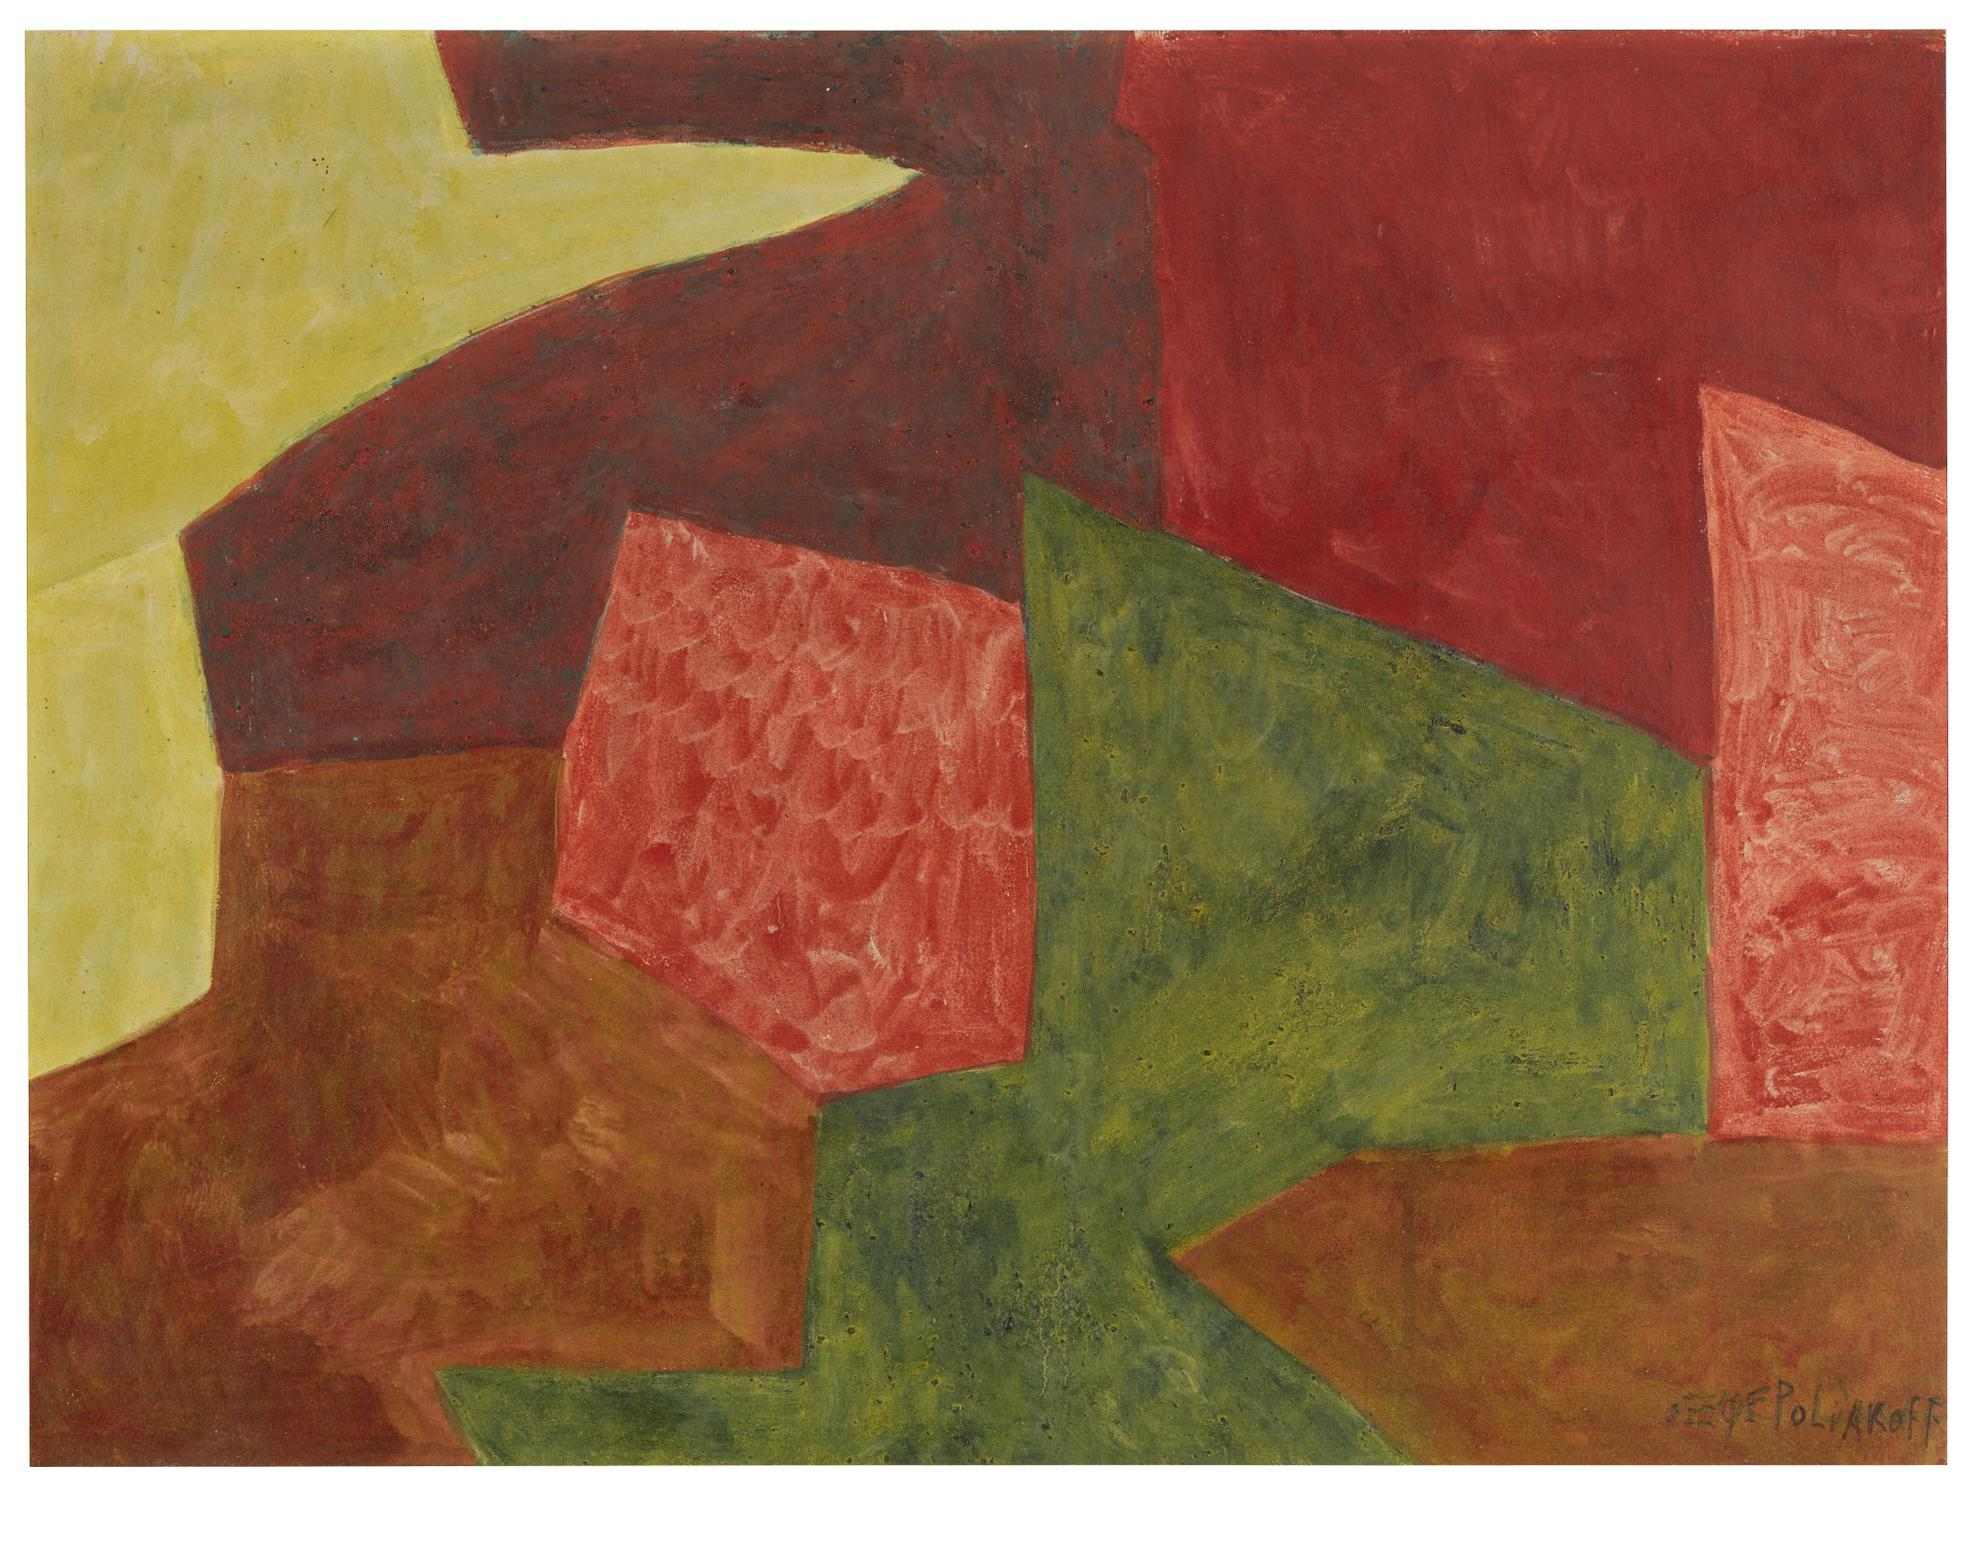 Serge Poliakoff-Composition Abstraite-1962